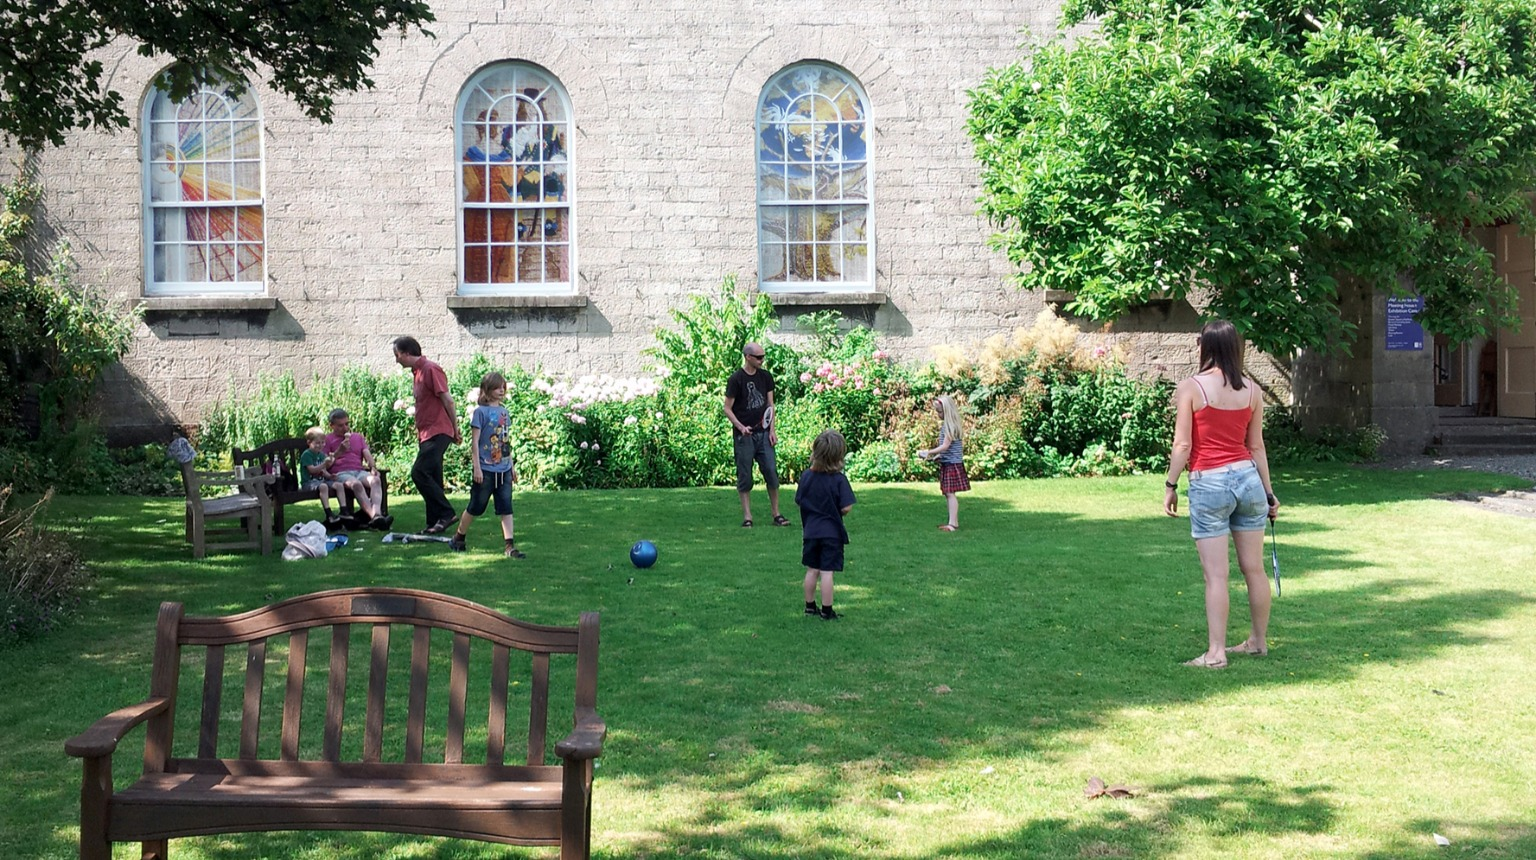 A space to run and play in the garden